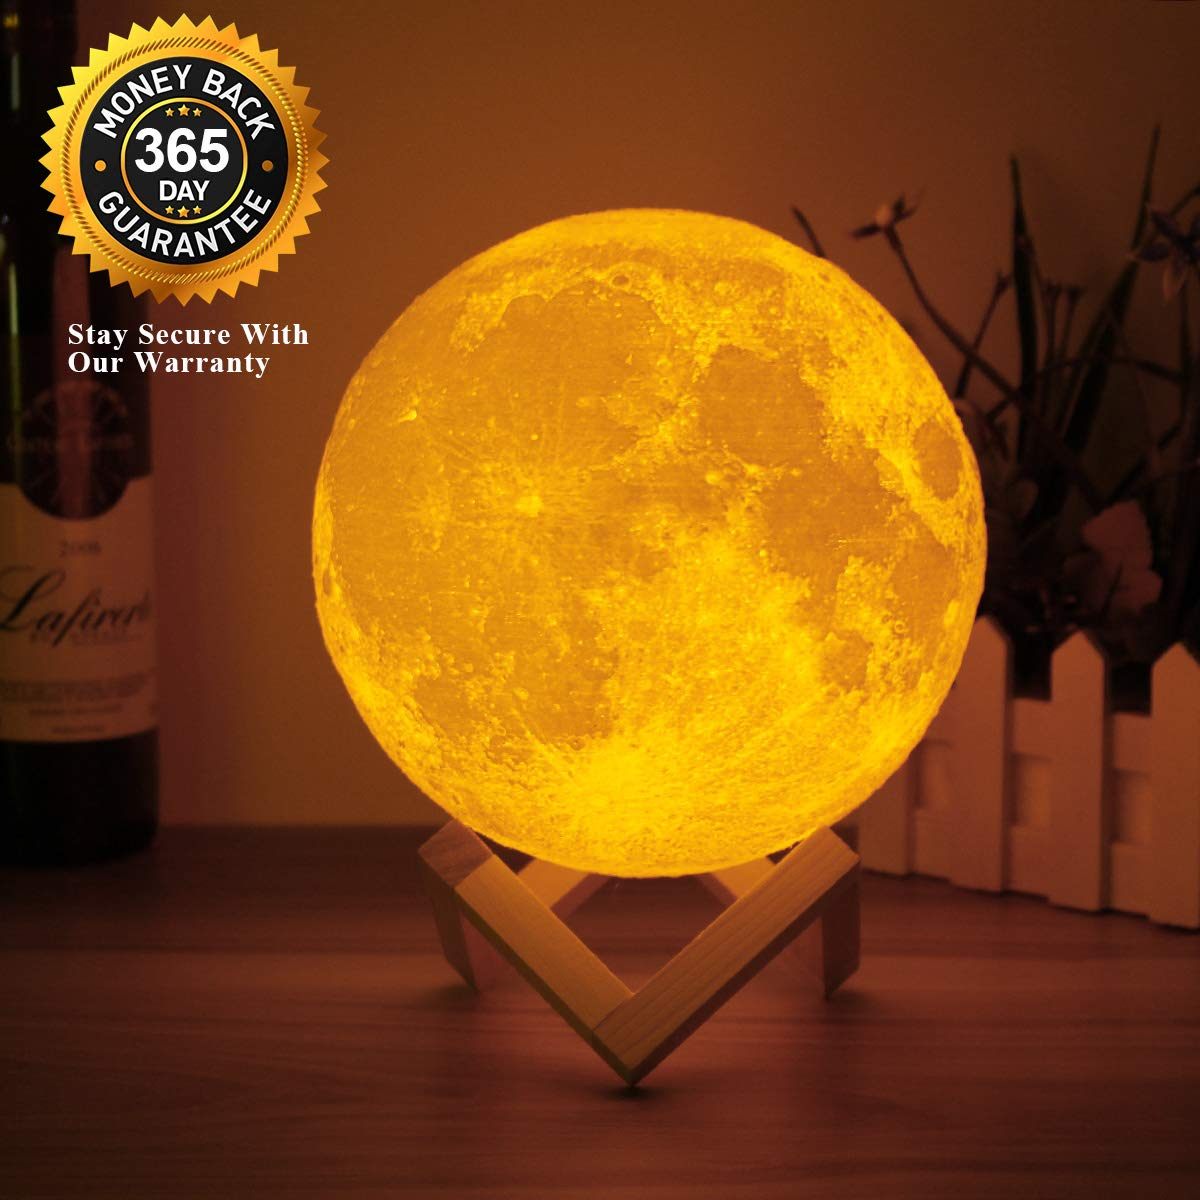 Eguled Moon Lamp Adjustable Brightness and Warm White/Cool White Color, USB Charging Cable. Romantic Moon Light Will Birthday Gifts for Women, Men, Kids, Child, and Baby by Eguled